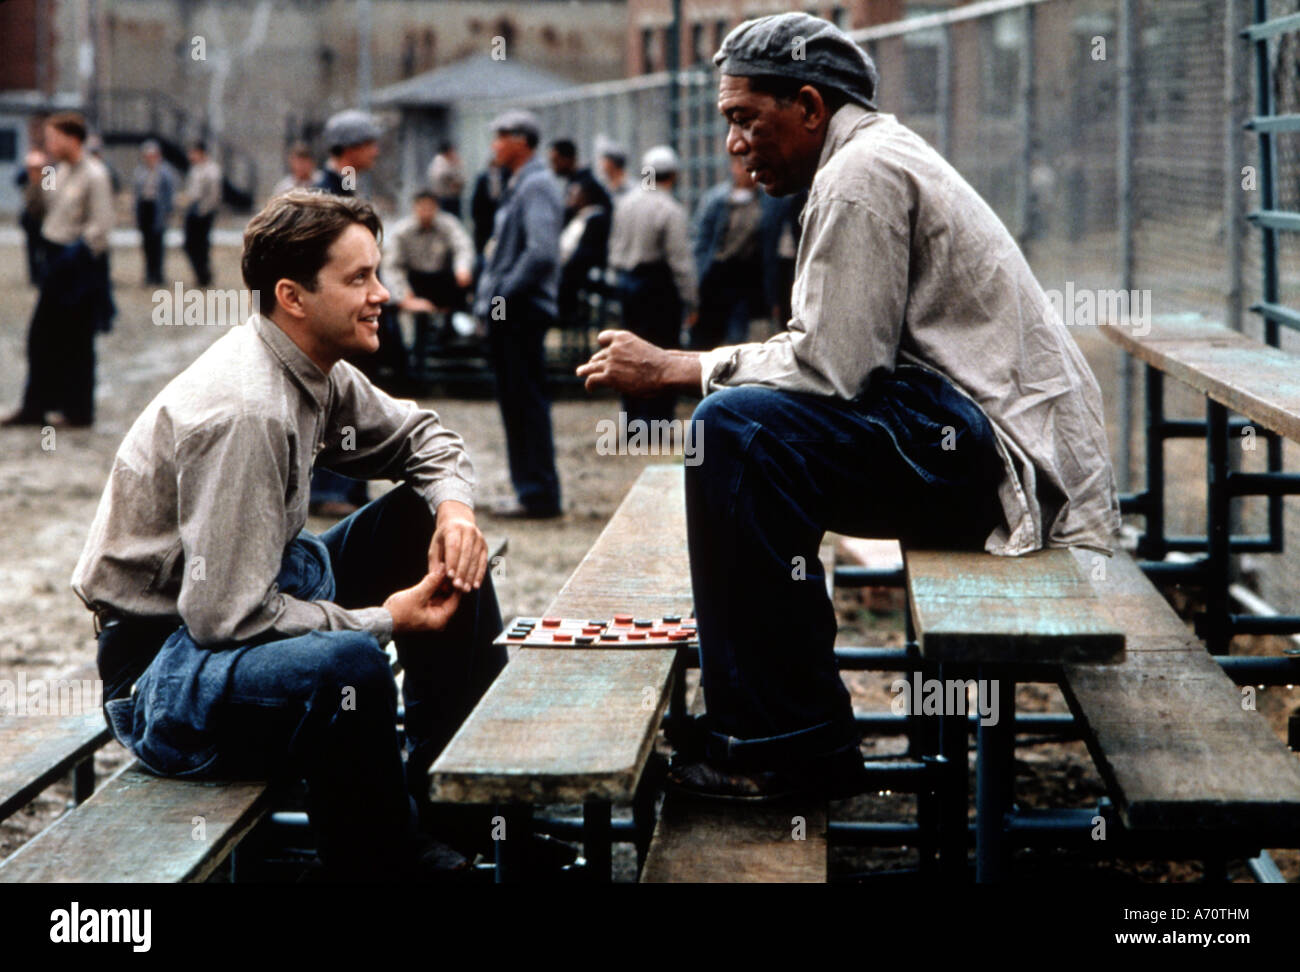 SHAWSHANK REDEMPTION  1994 Rank/Castle Rock film with Tim Robbine at left and Morgan Freeman - Stock Image